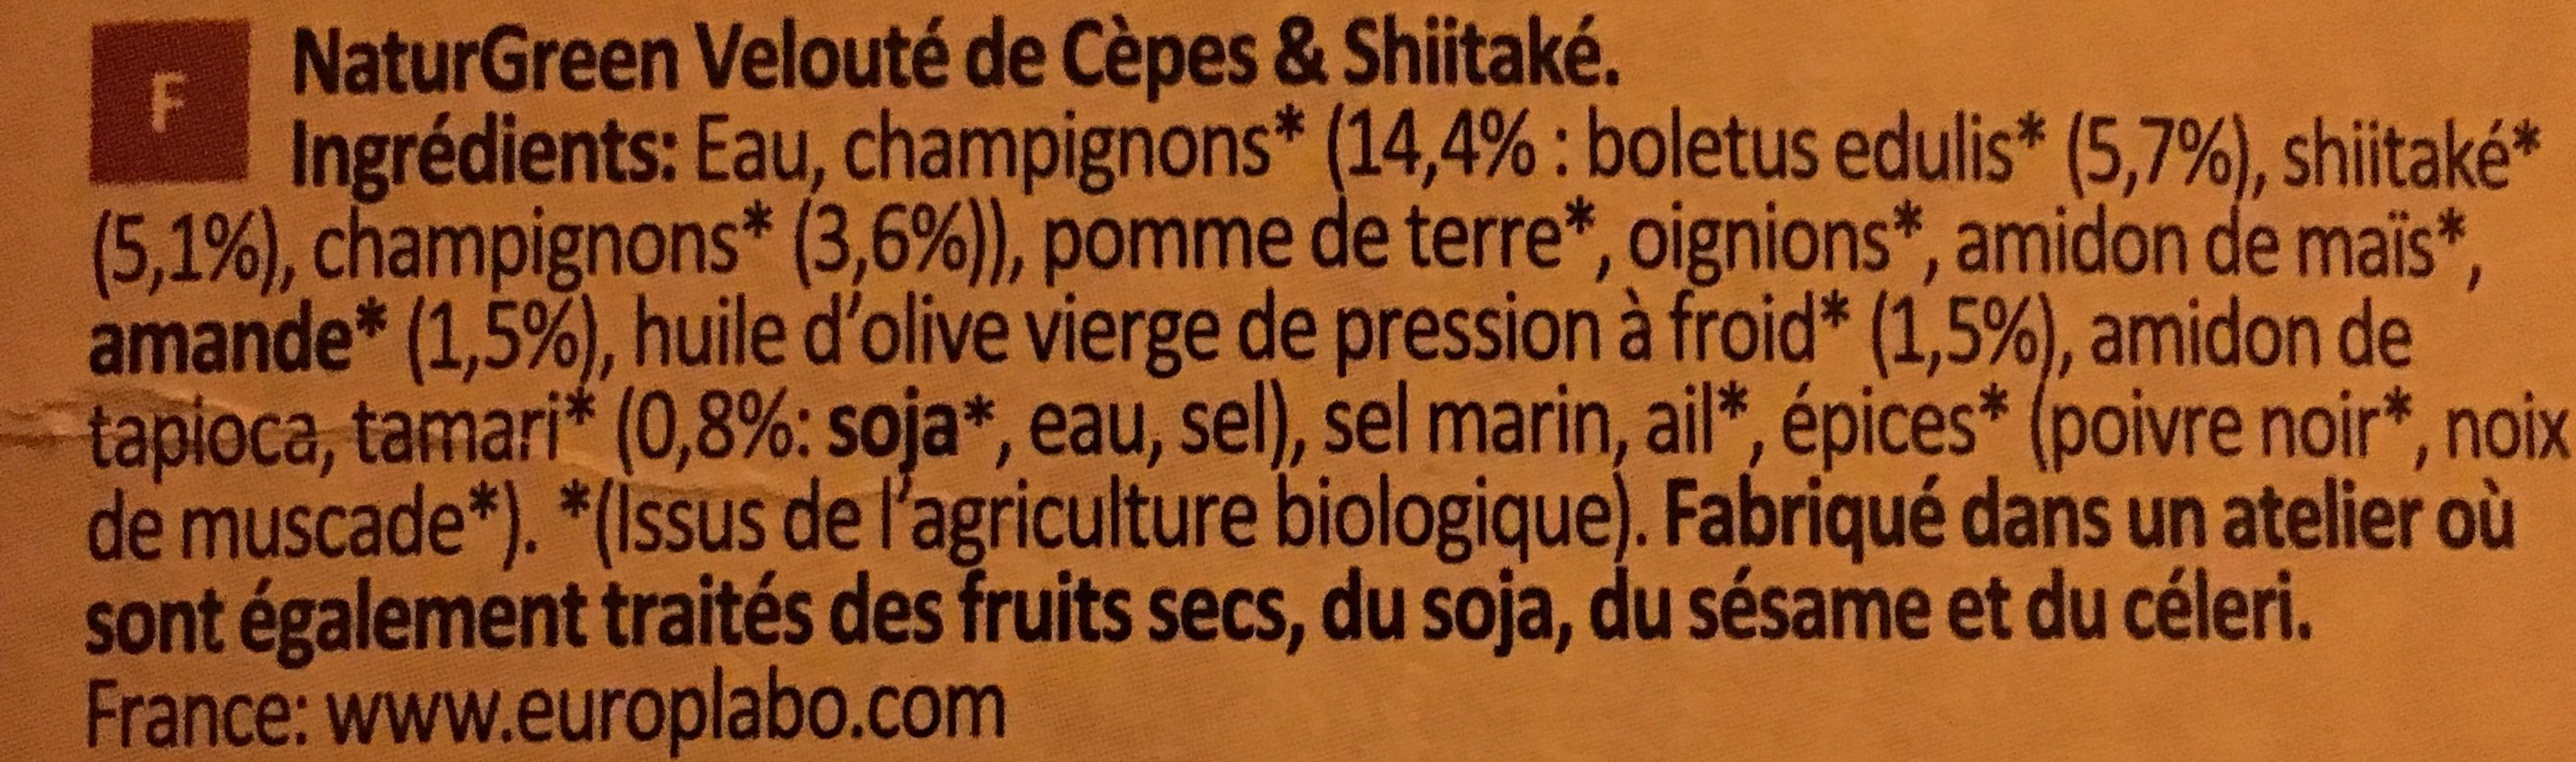 Veloute Cepes Shiitake S Gluten S Lactose - Ingrédients - fr